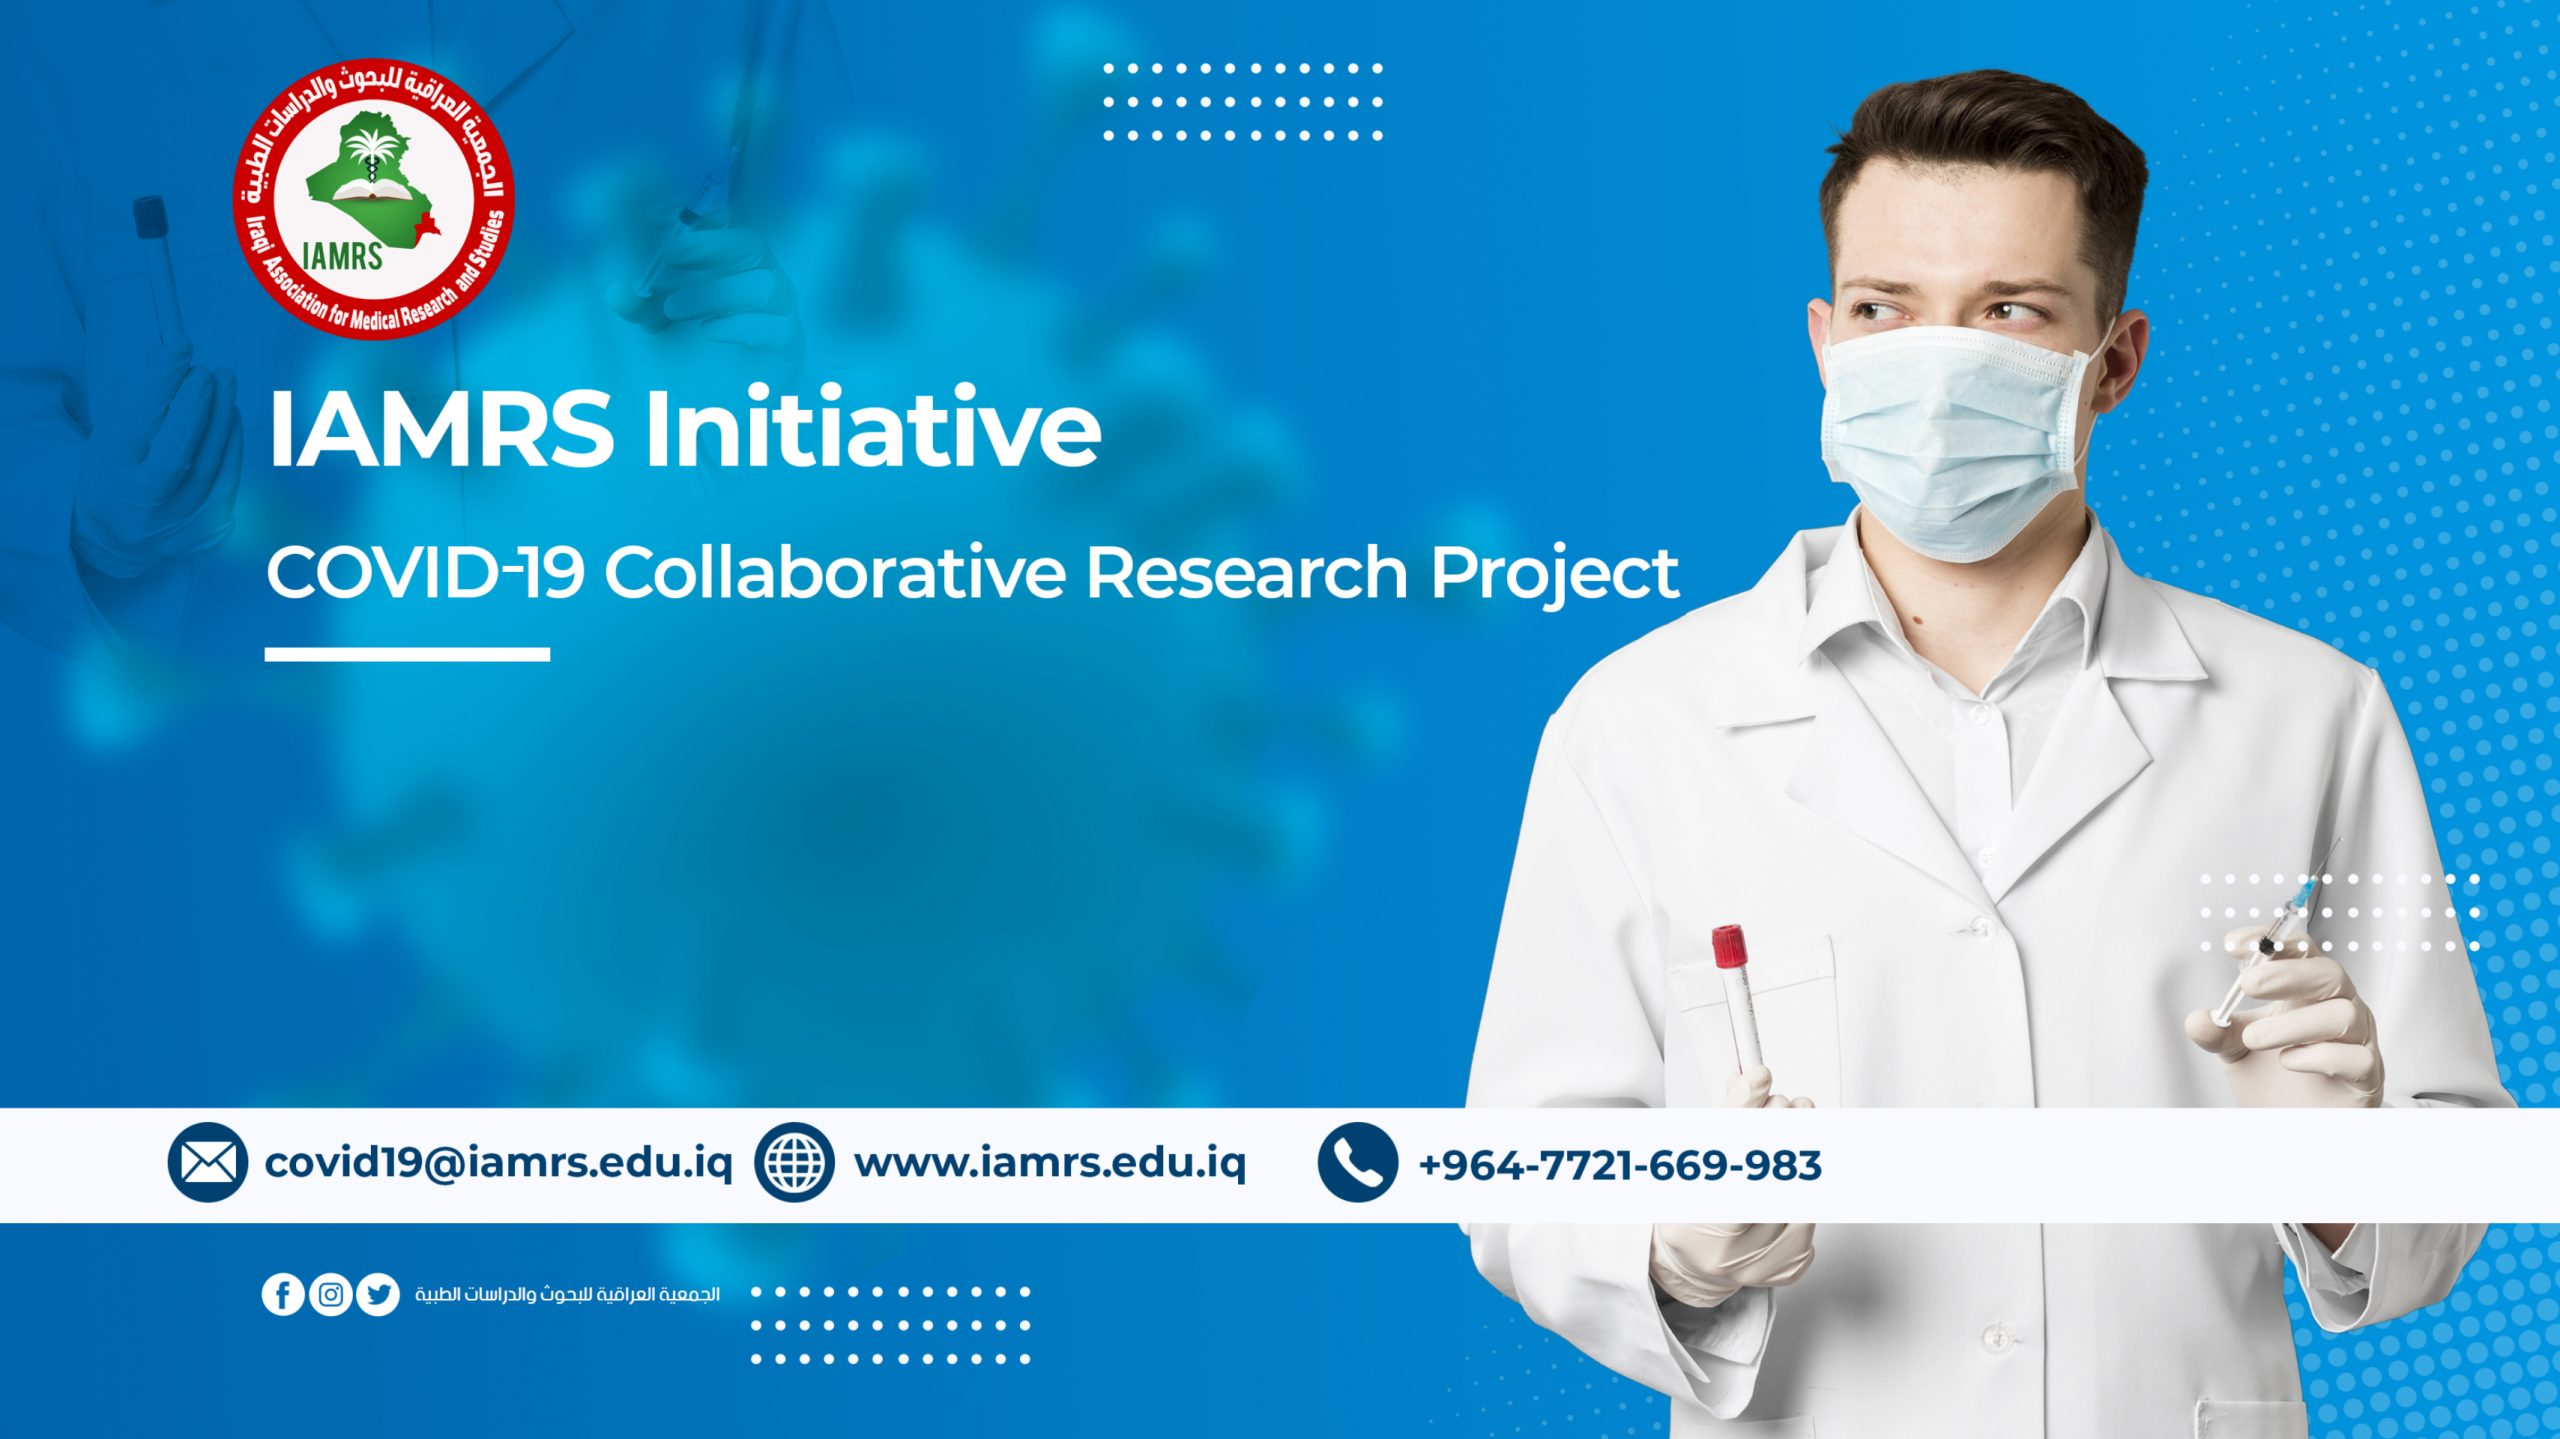 IAMRS COVID-19 Research Initiative